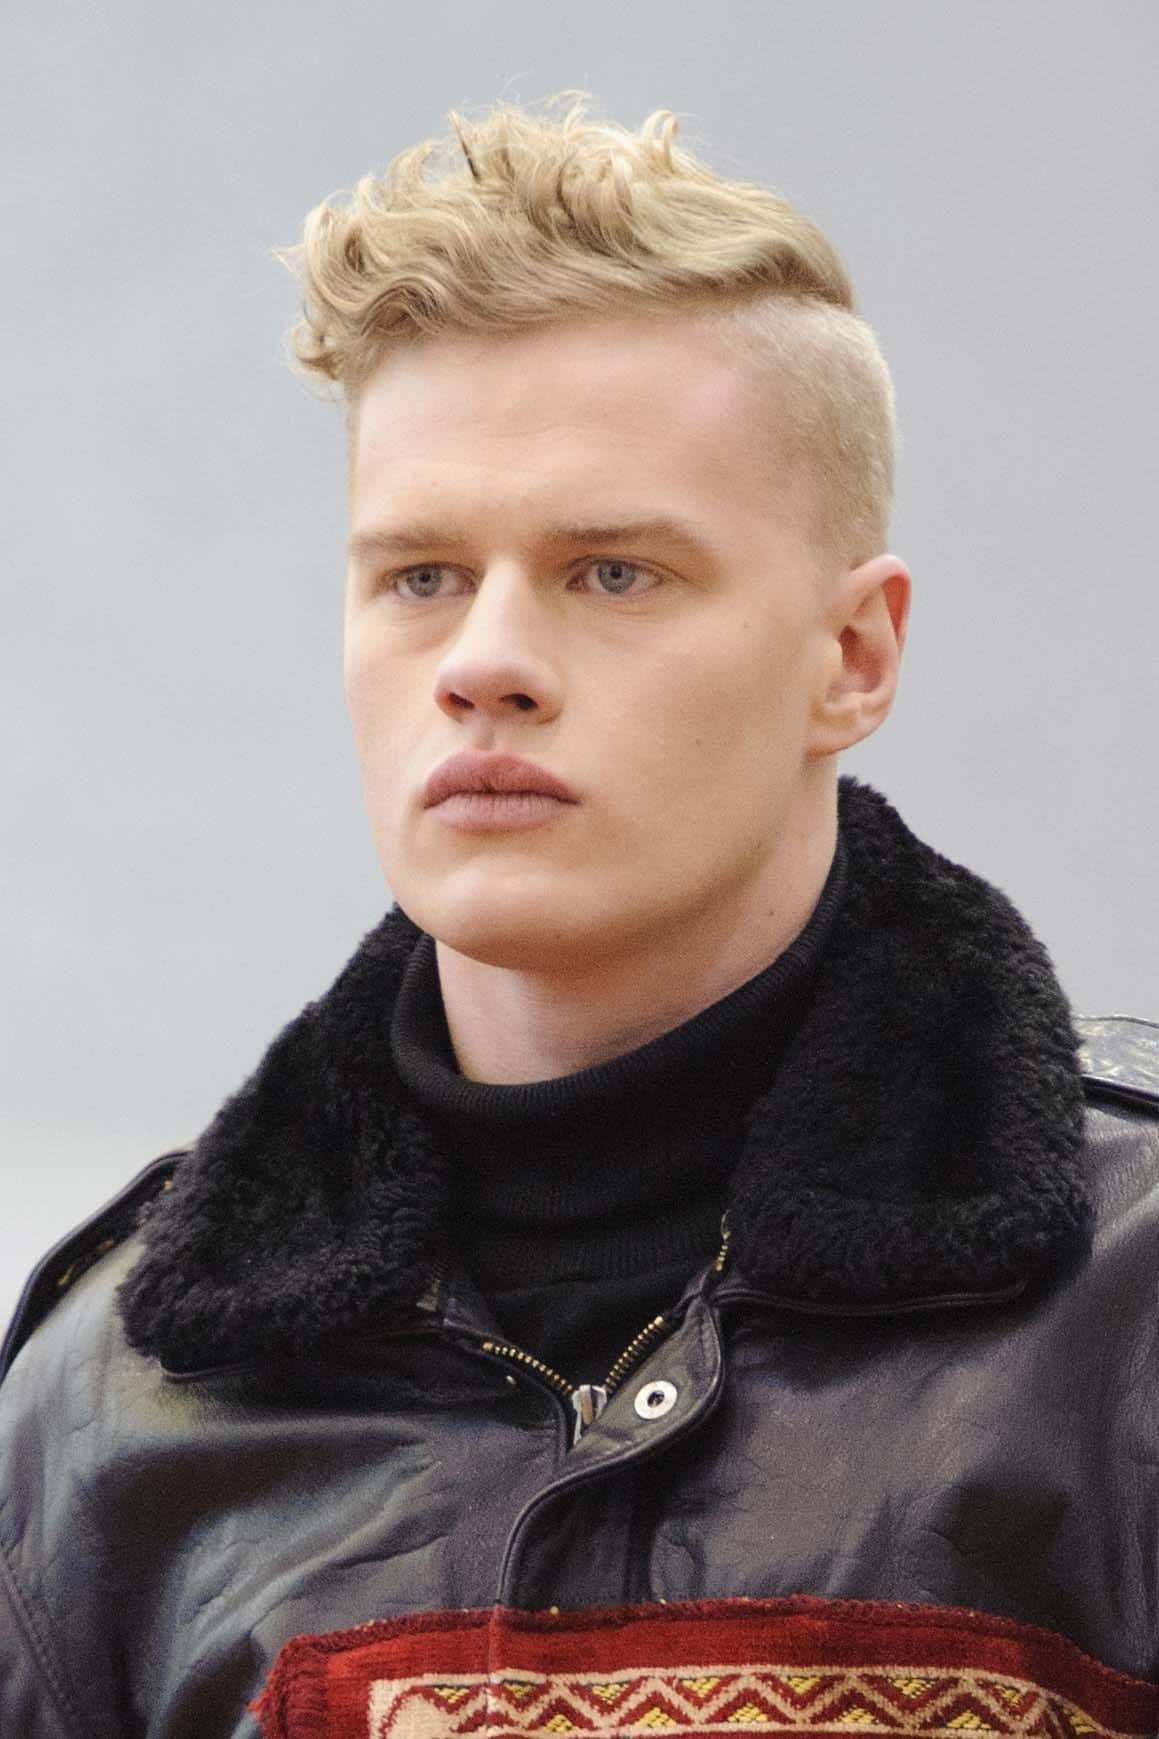 How To Style Fade Haircuts Includes Wearing Your Undercut Curly.